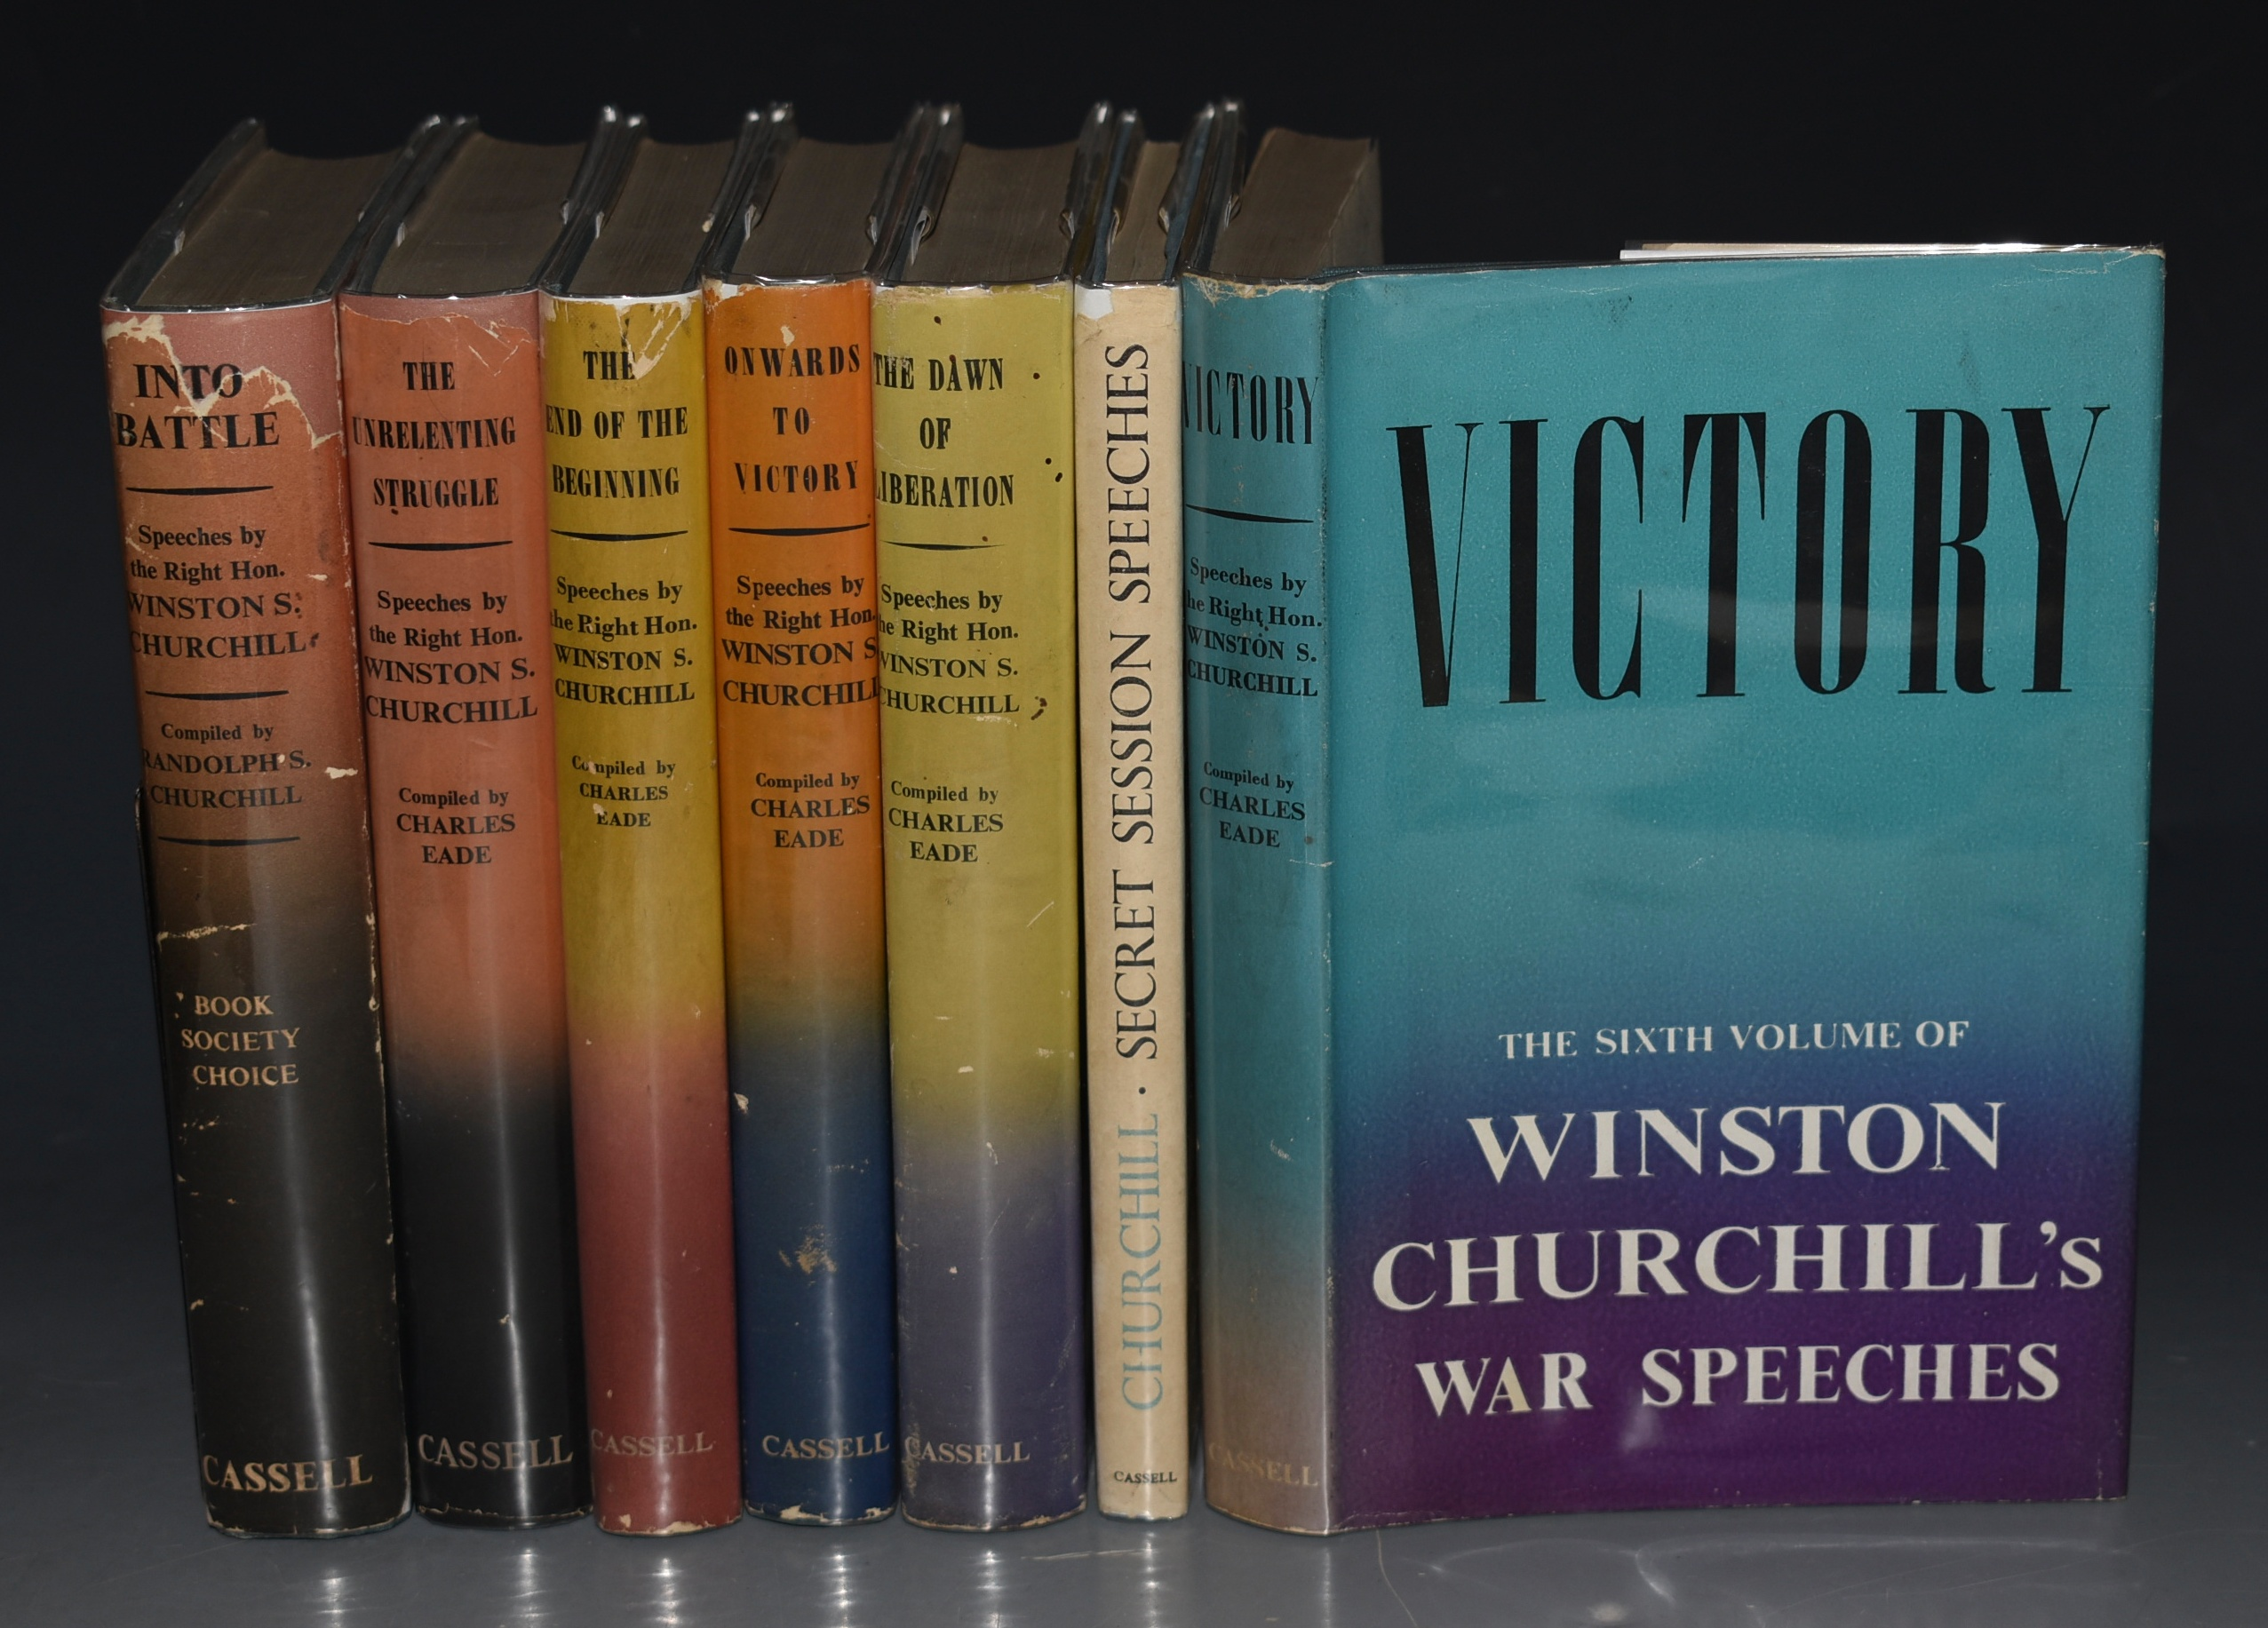 Image for Speeches. In Seven Volumes. Into Battle, The End of the Beginning, The Unrelenting Struggle, Onwards Towards Victory, The Dawn of Liberation, Victory. PLUS: Secret Session Speeches.